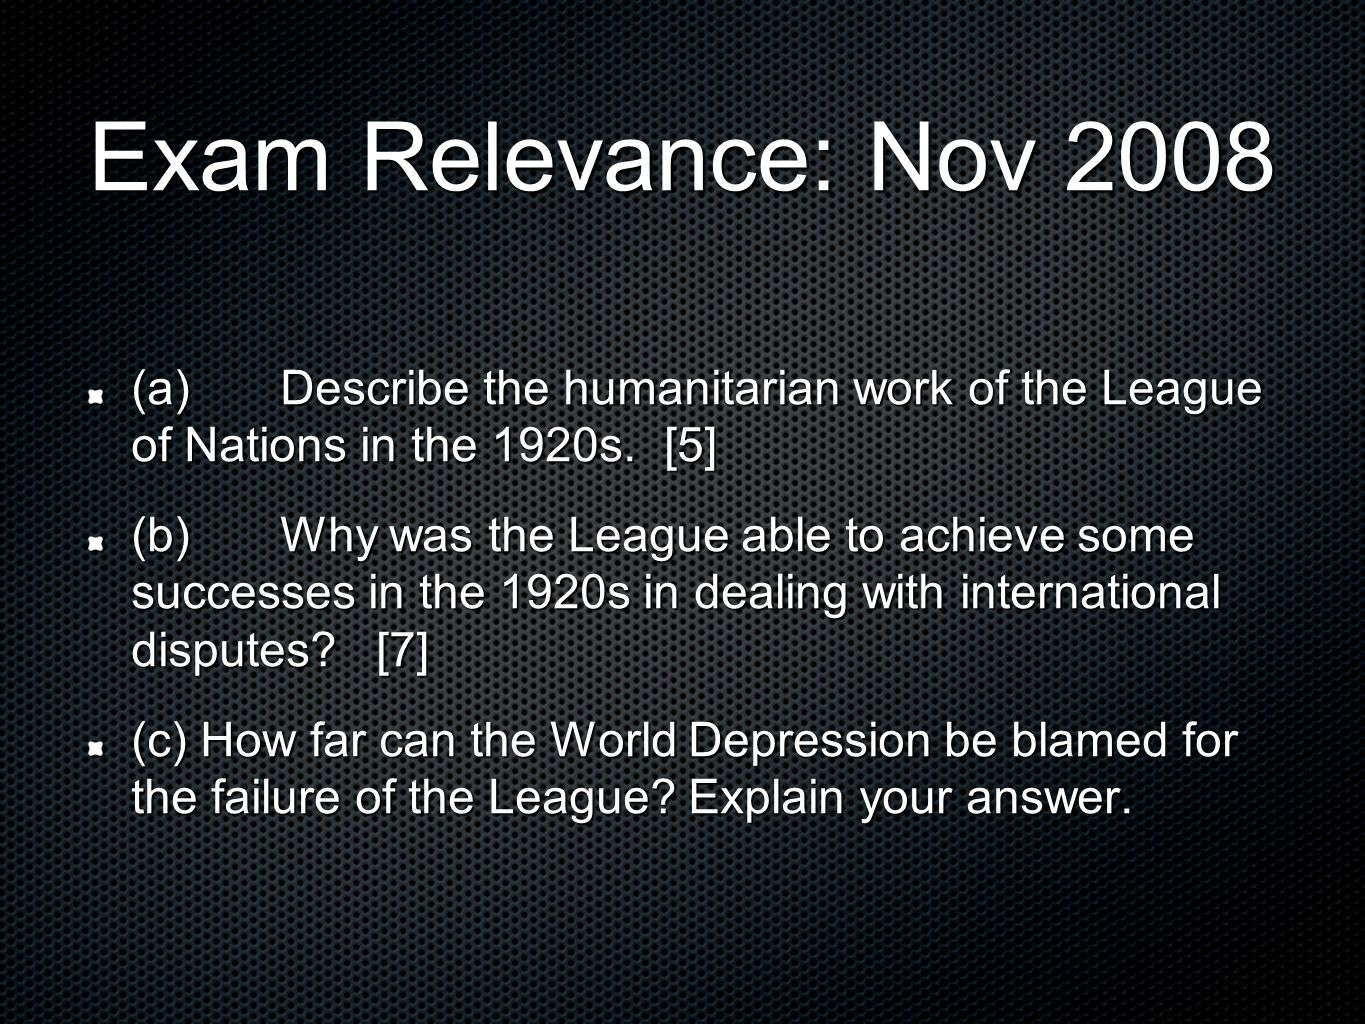 Exam Relevance: Nov 2008 (a) Describe the humanitarian work of the League of Nations in the 1920s. [5]